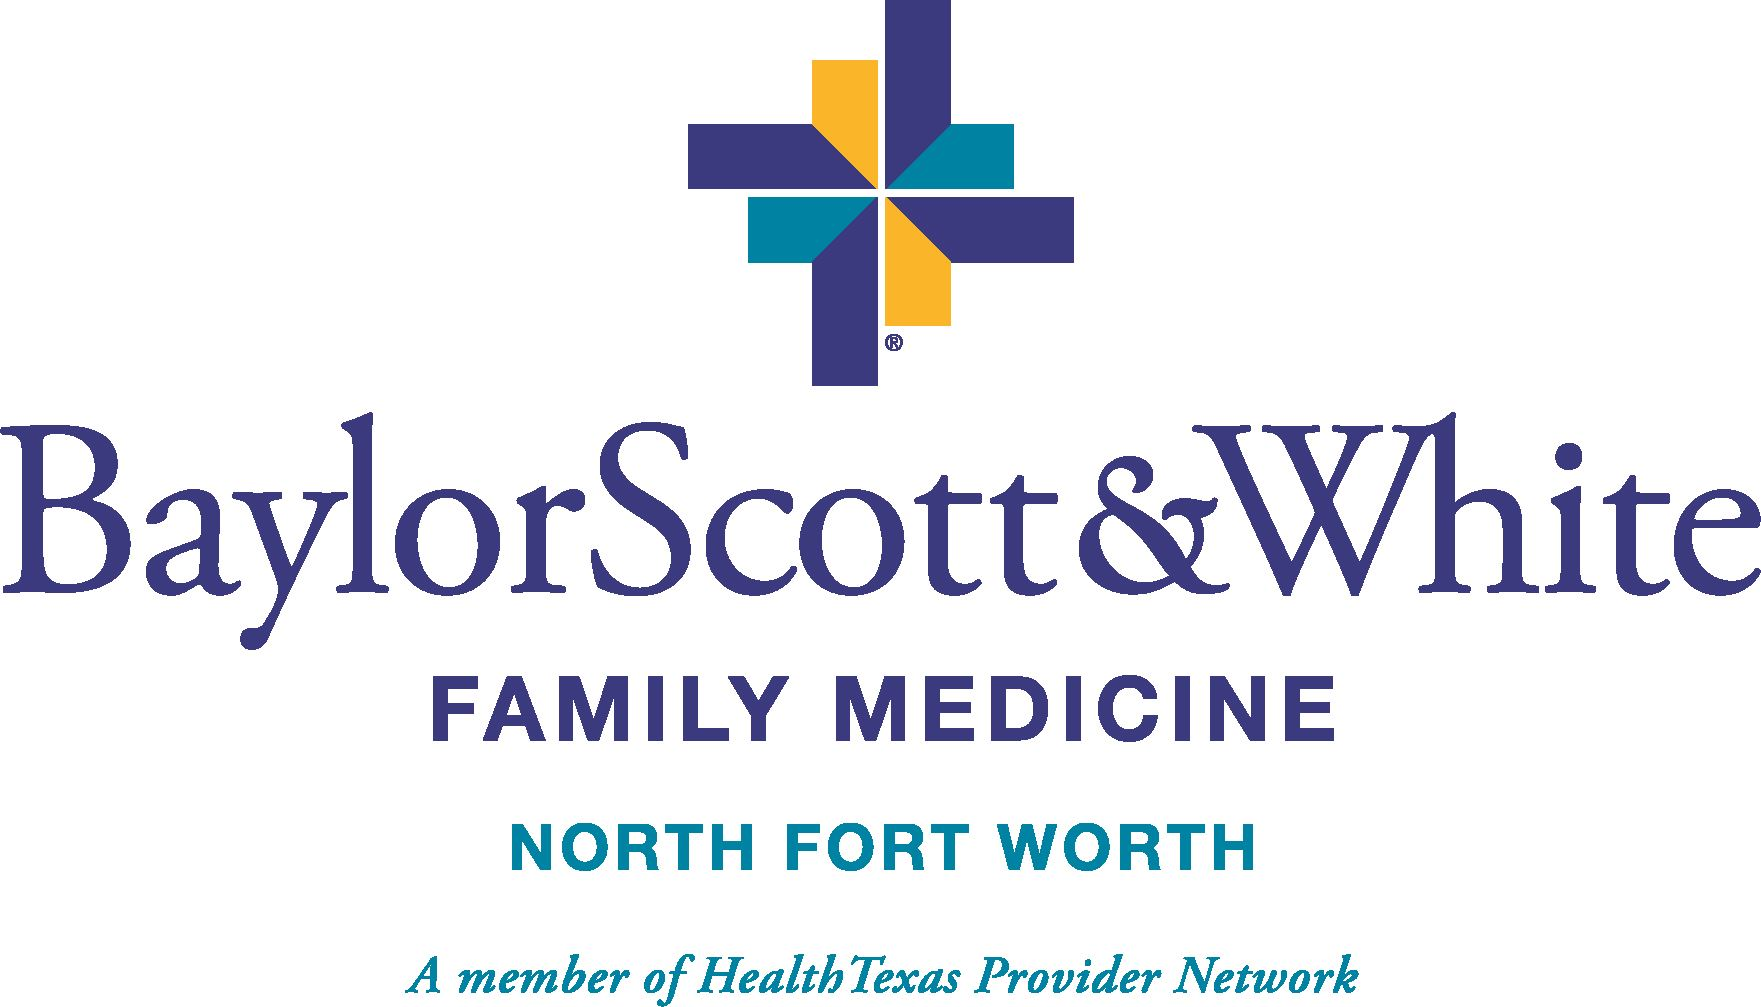 BSW Family Medicine North Fort Worth amoHTPN_C_N4c